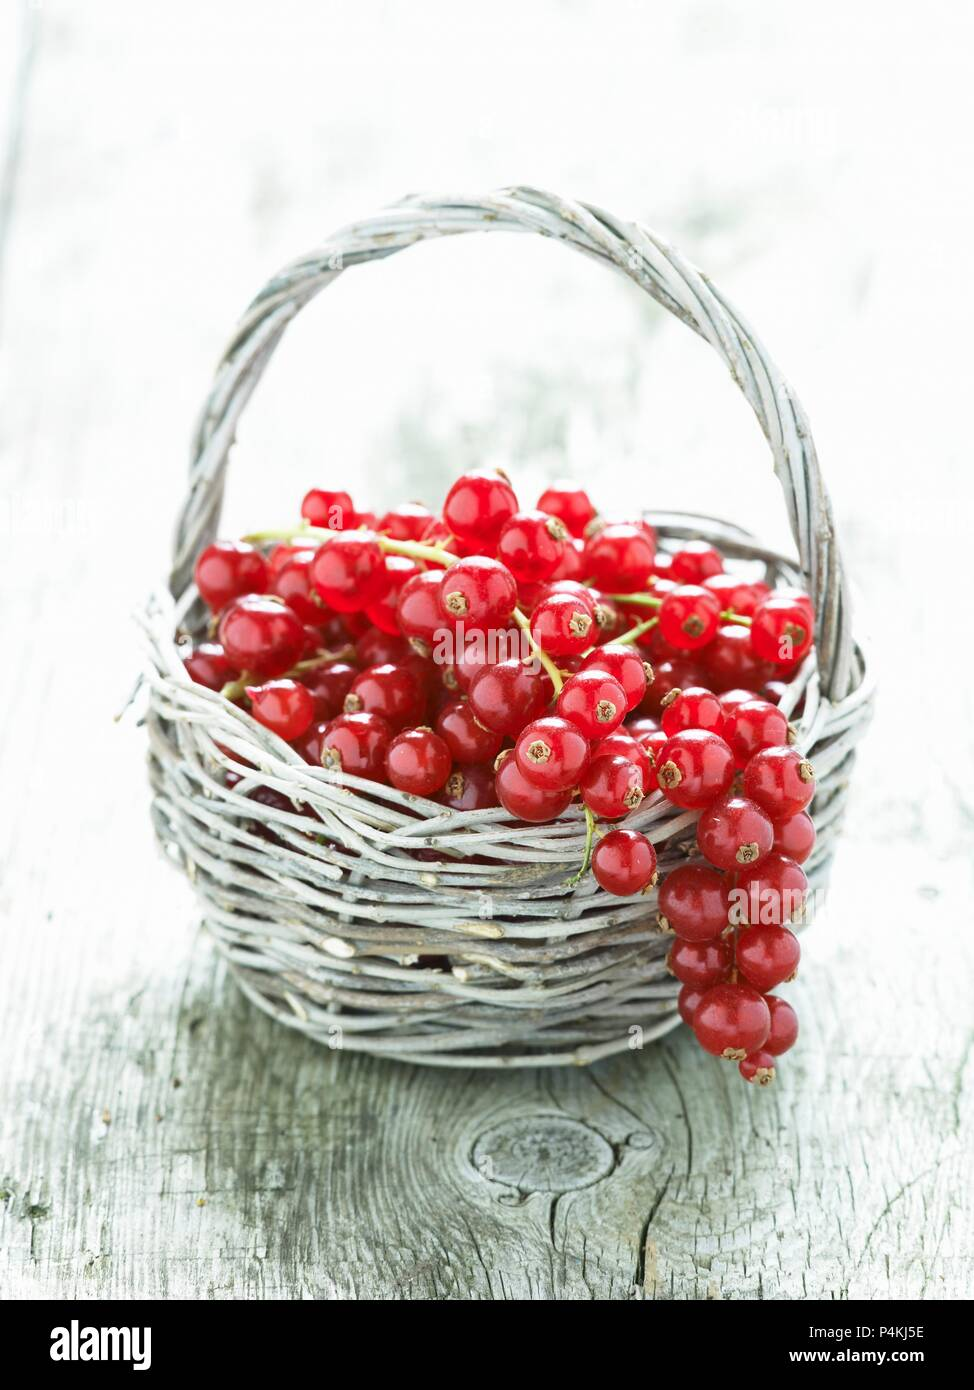 Redcurrants in a basket - Stock Image